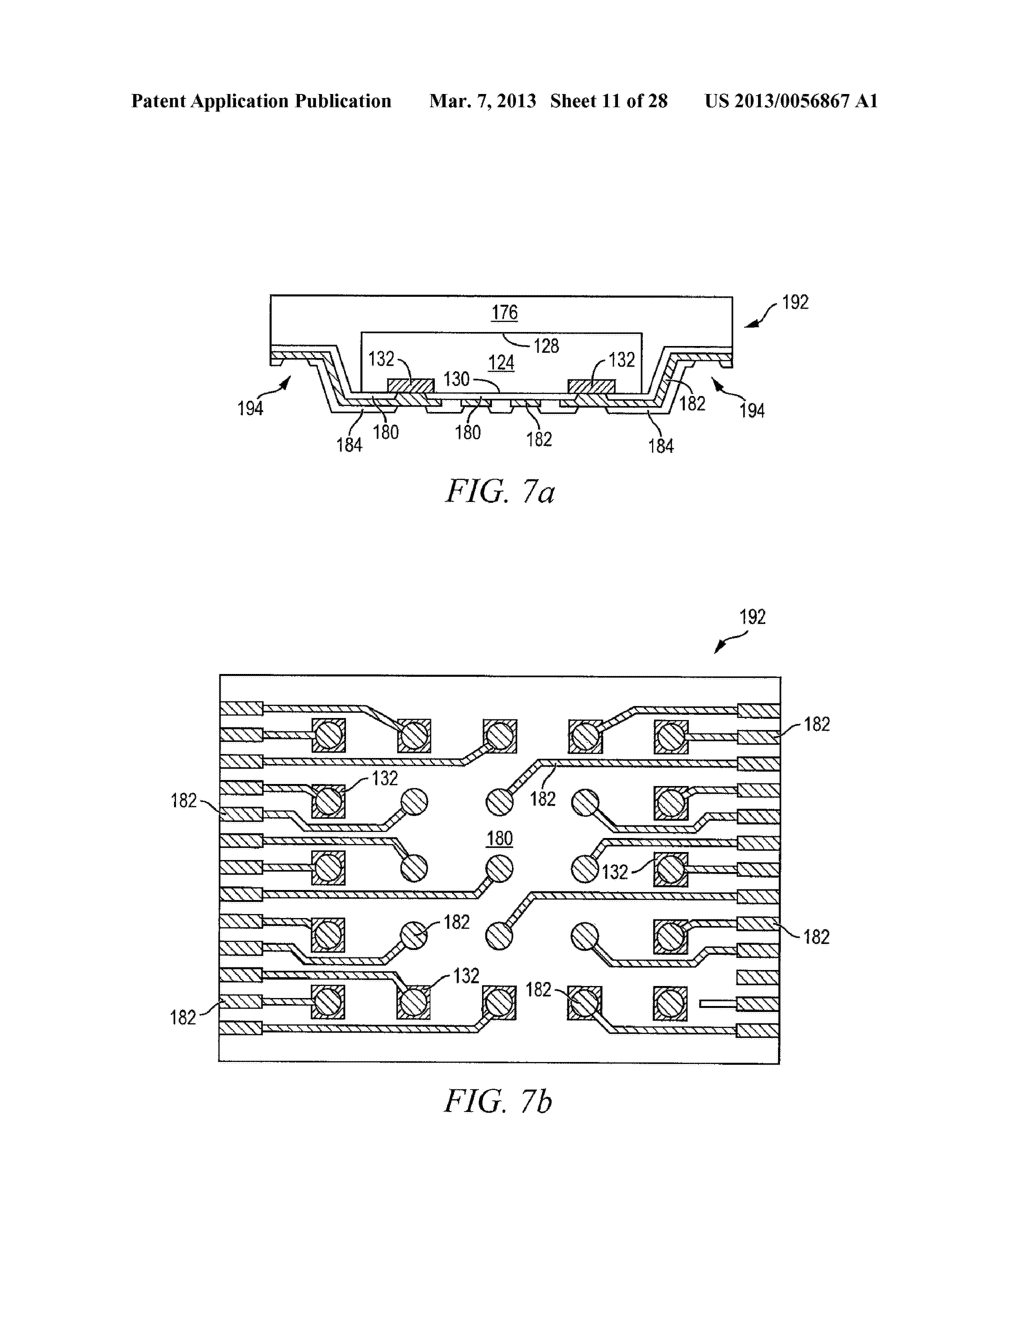 Semiconductor device and method of forming FO-WLCSP with recessed     interconnect area in peripheralregion of semiconductor die - diagram, schematic, and image 12